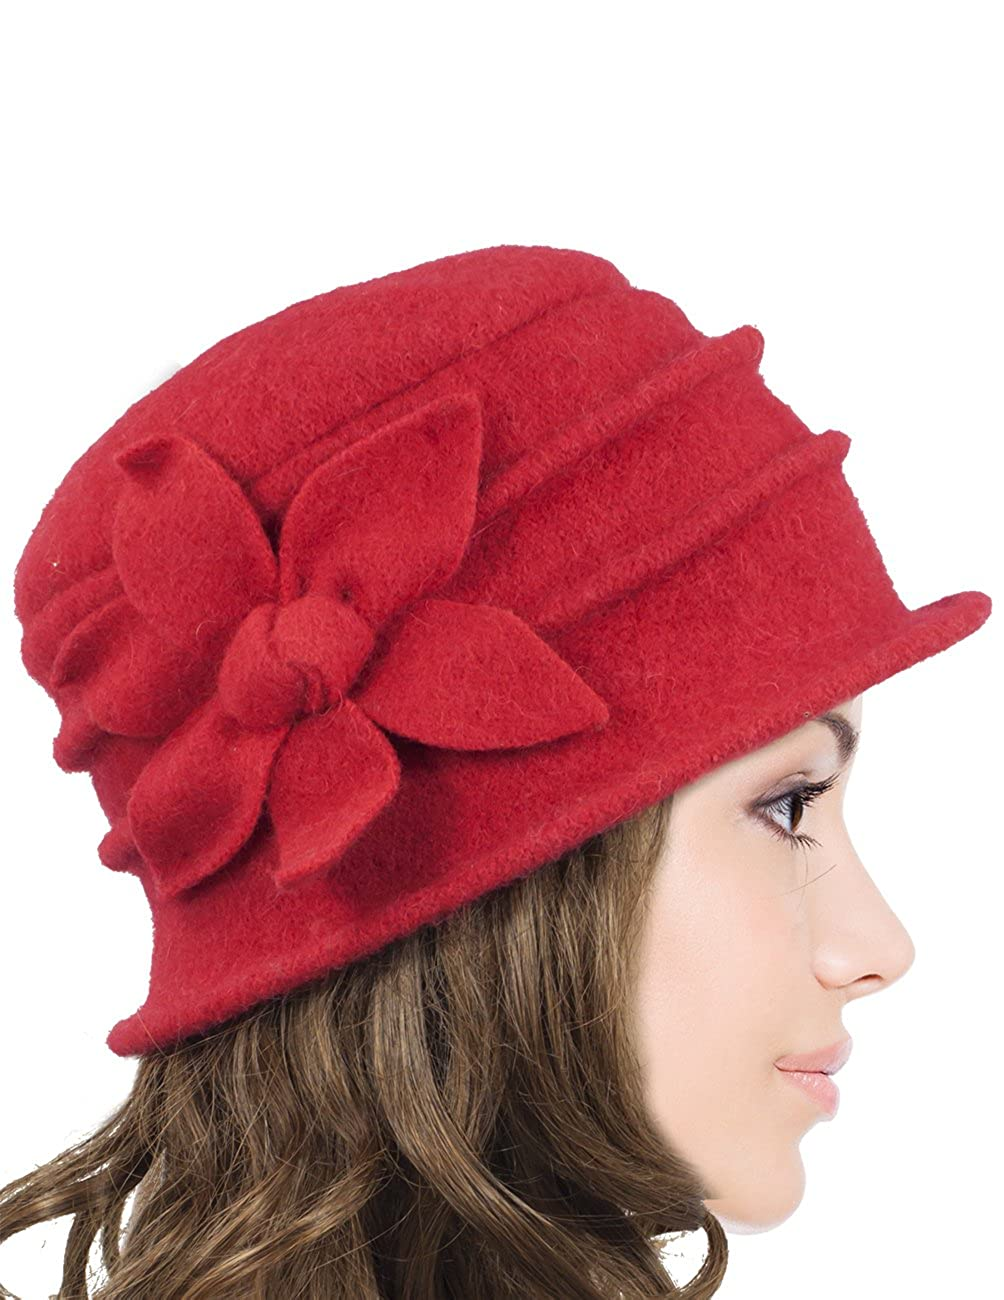 20a63ab0668 Dahlia Women s Daisy Flower Wool Cloche Bucket Hat HT0014WLW-BK ...